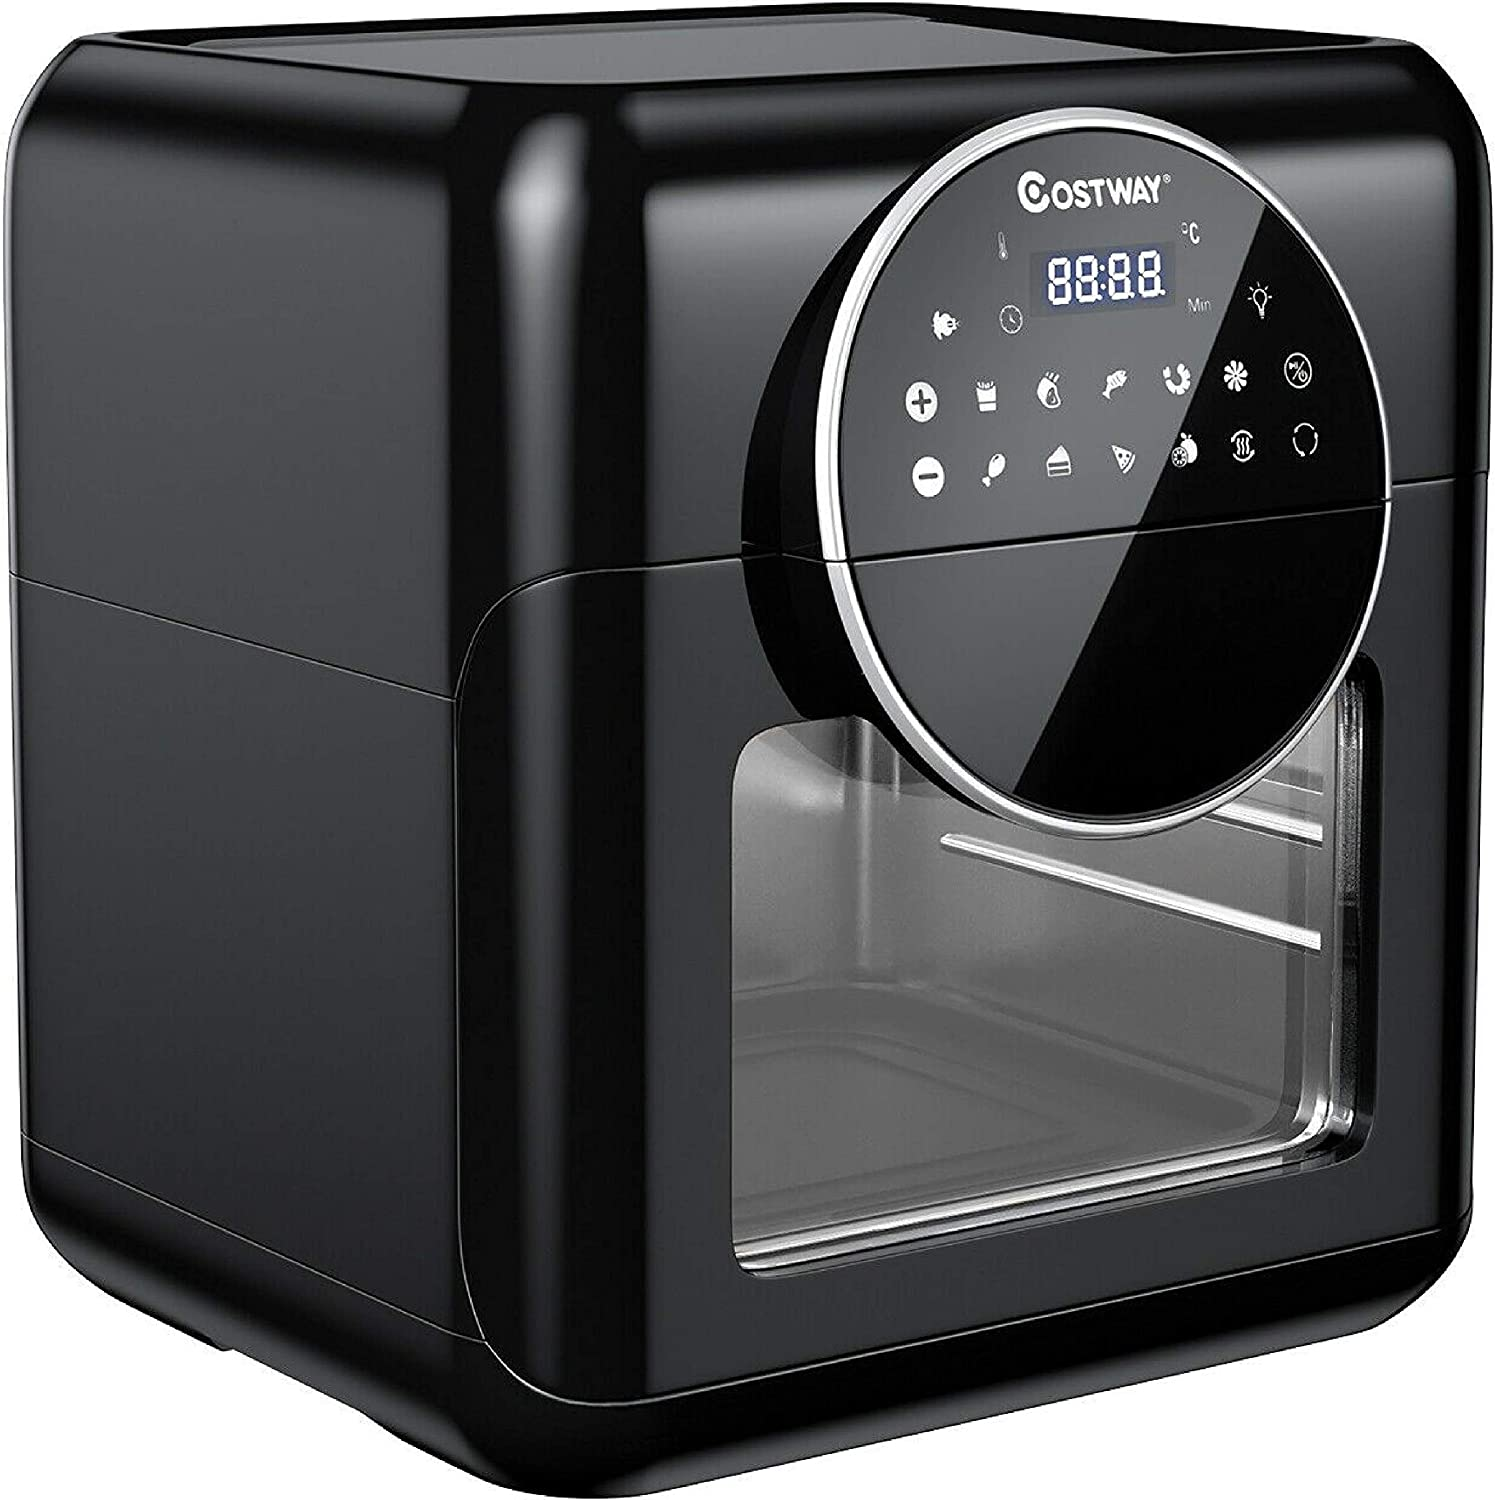 HomyDelight Deep r, 10.6QT 8-in-1 Air r Digital Toaster Oven Rotisserie with Accessories